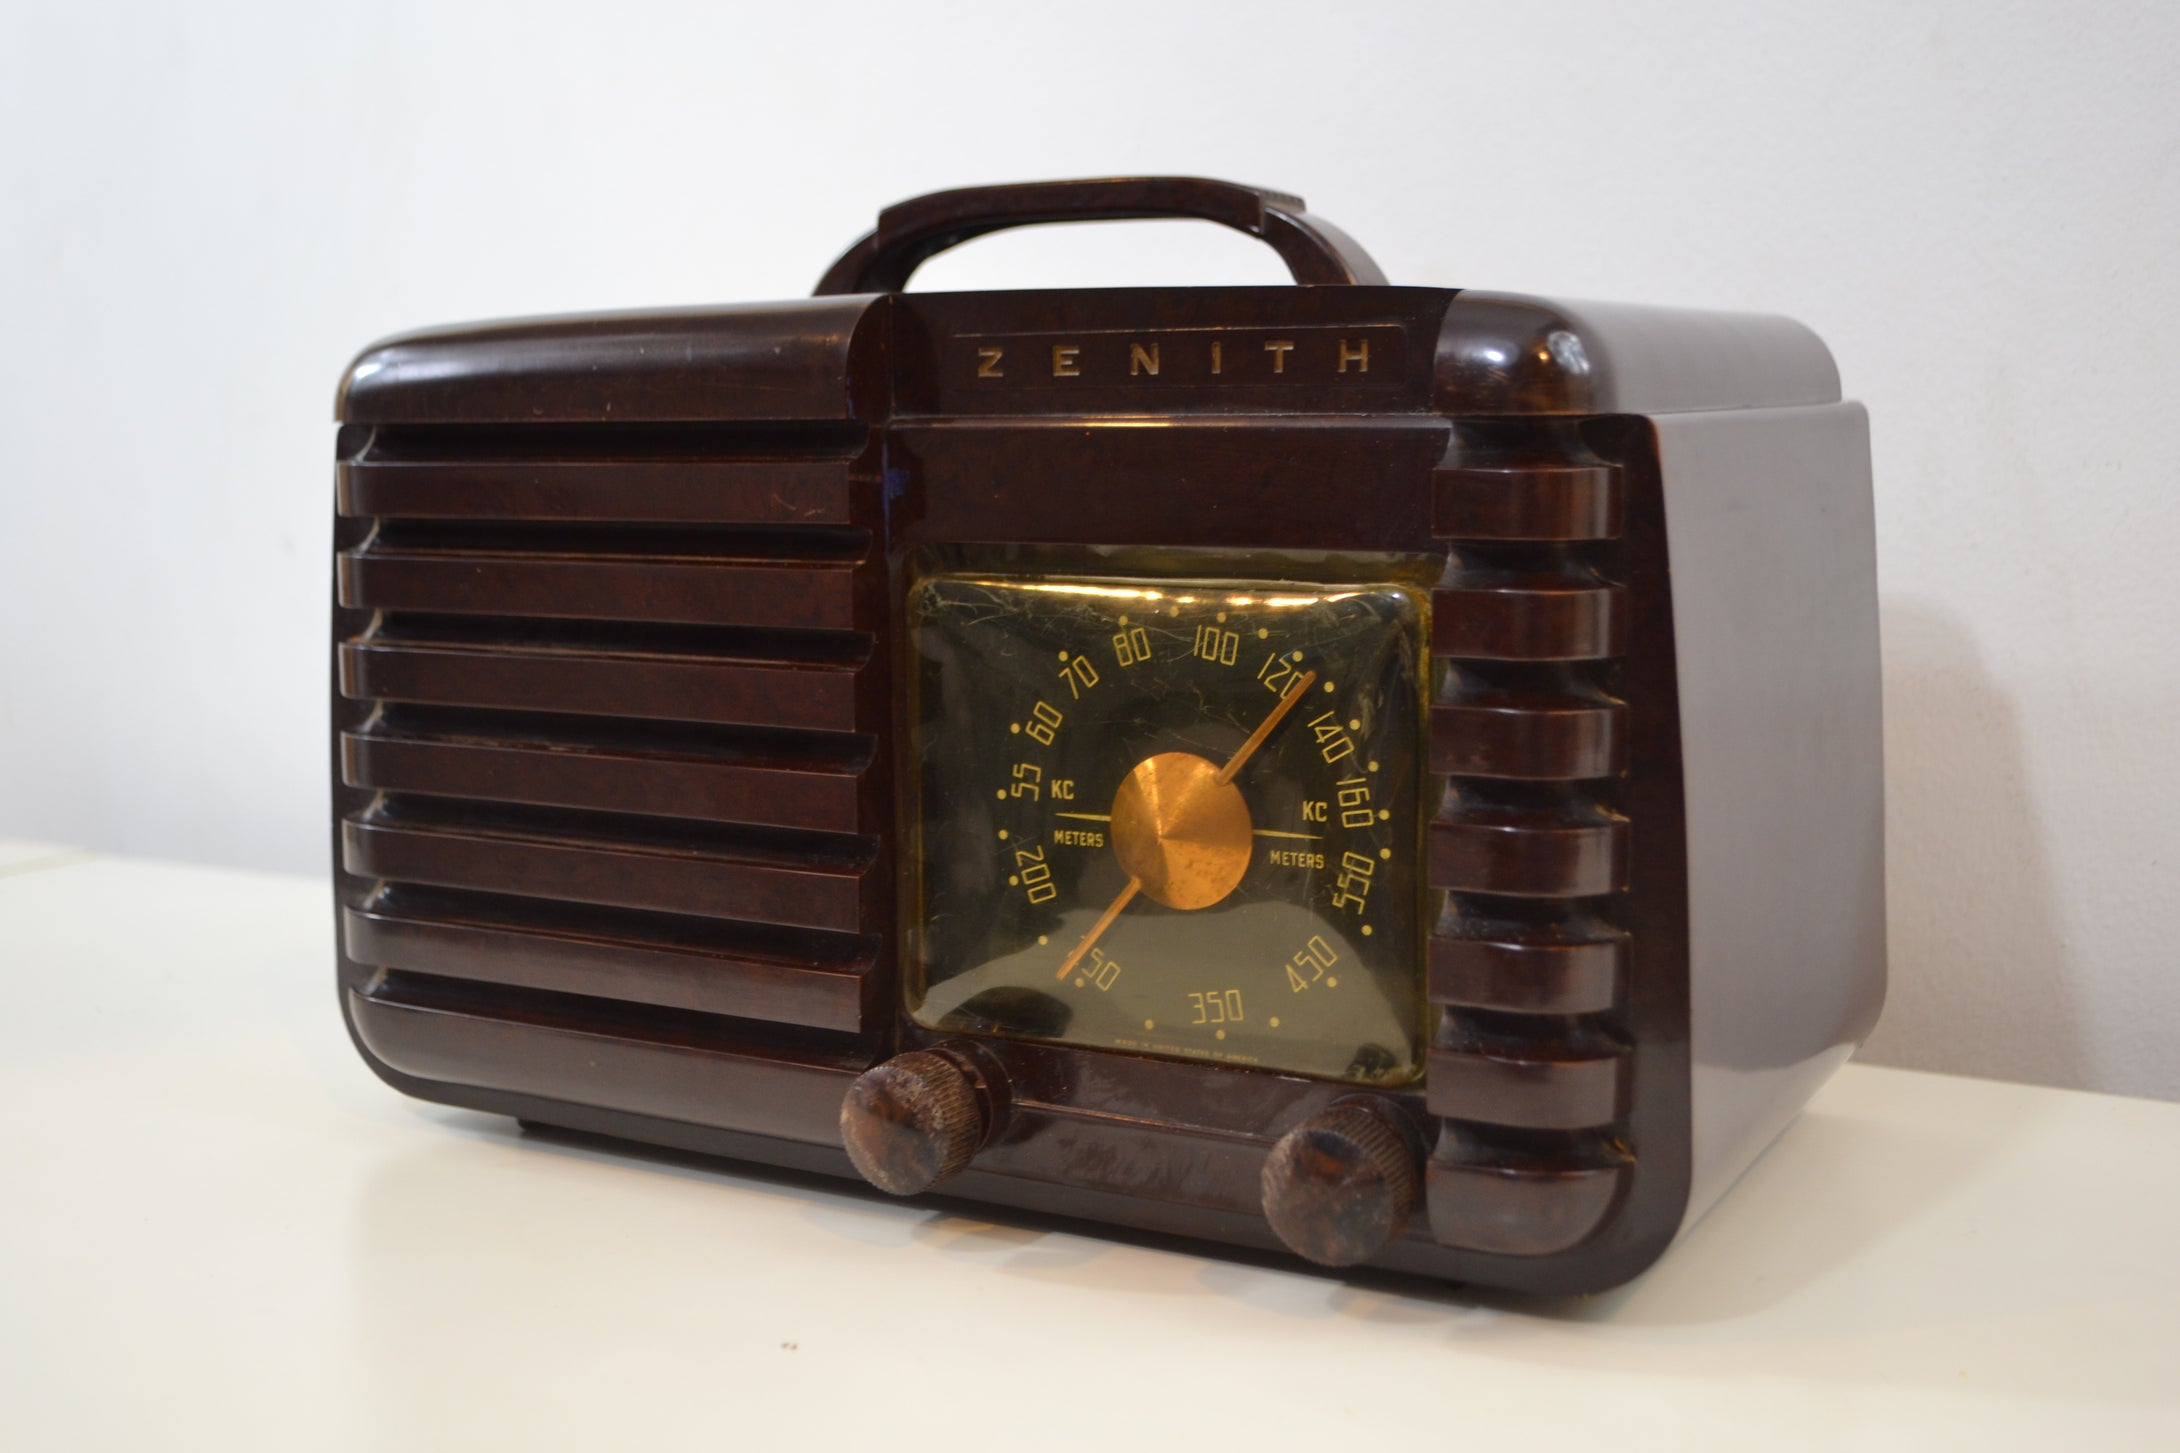 SOLD! - Jan. 19, 2020 - Mahogany Marbled Brown Bakelite 1951 Zenith Model H724Z2 AM Tube Radio Great Player! - [product_type} - Zenith - Retro Radio Farm